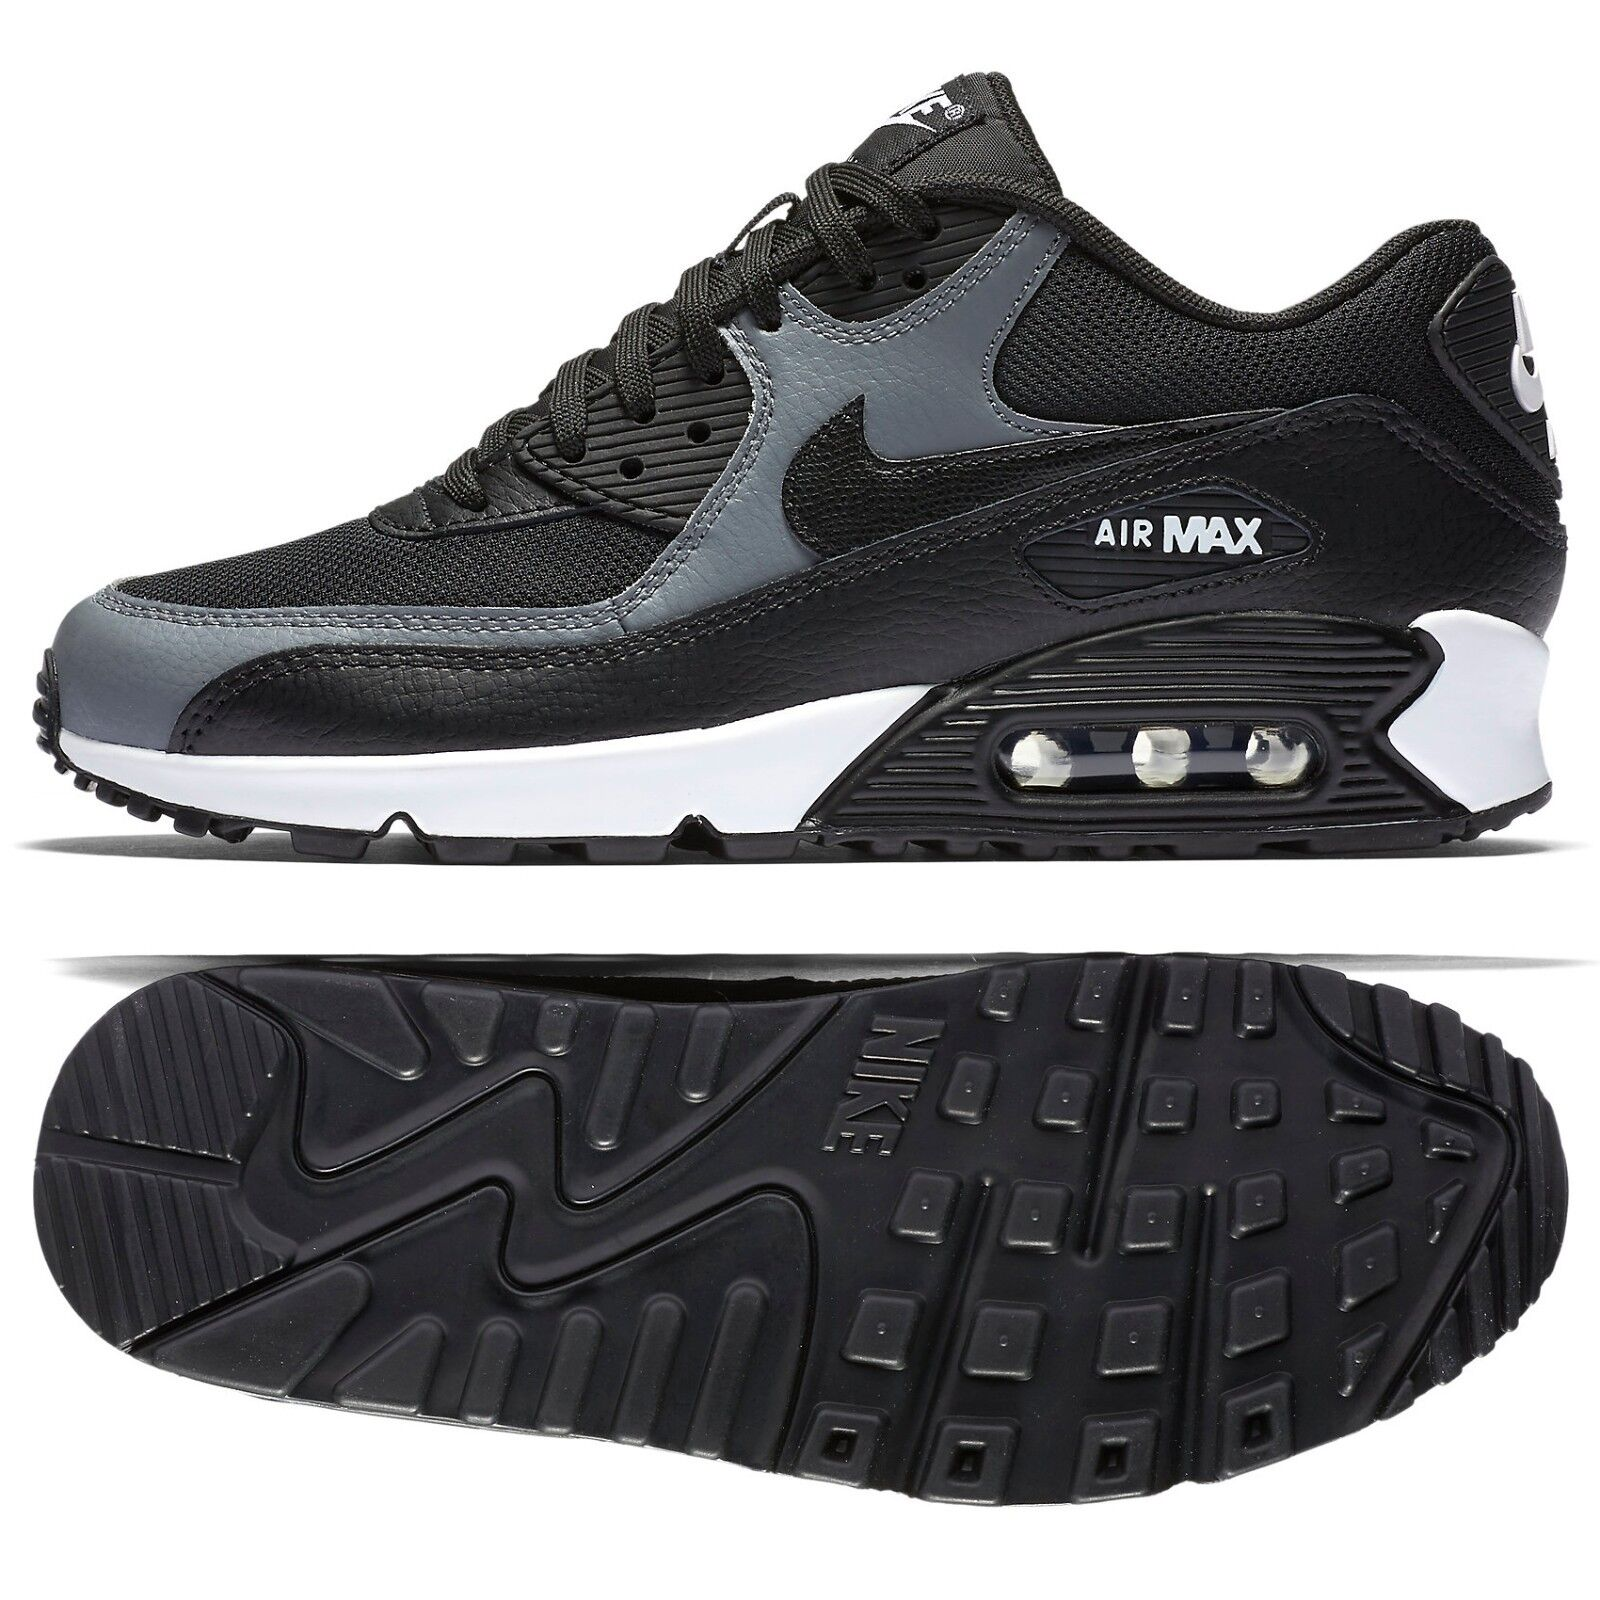 Nike WMNS Air Max 90 Black Cool Grey 325213-037 Leather Women's Running shoes